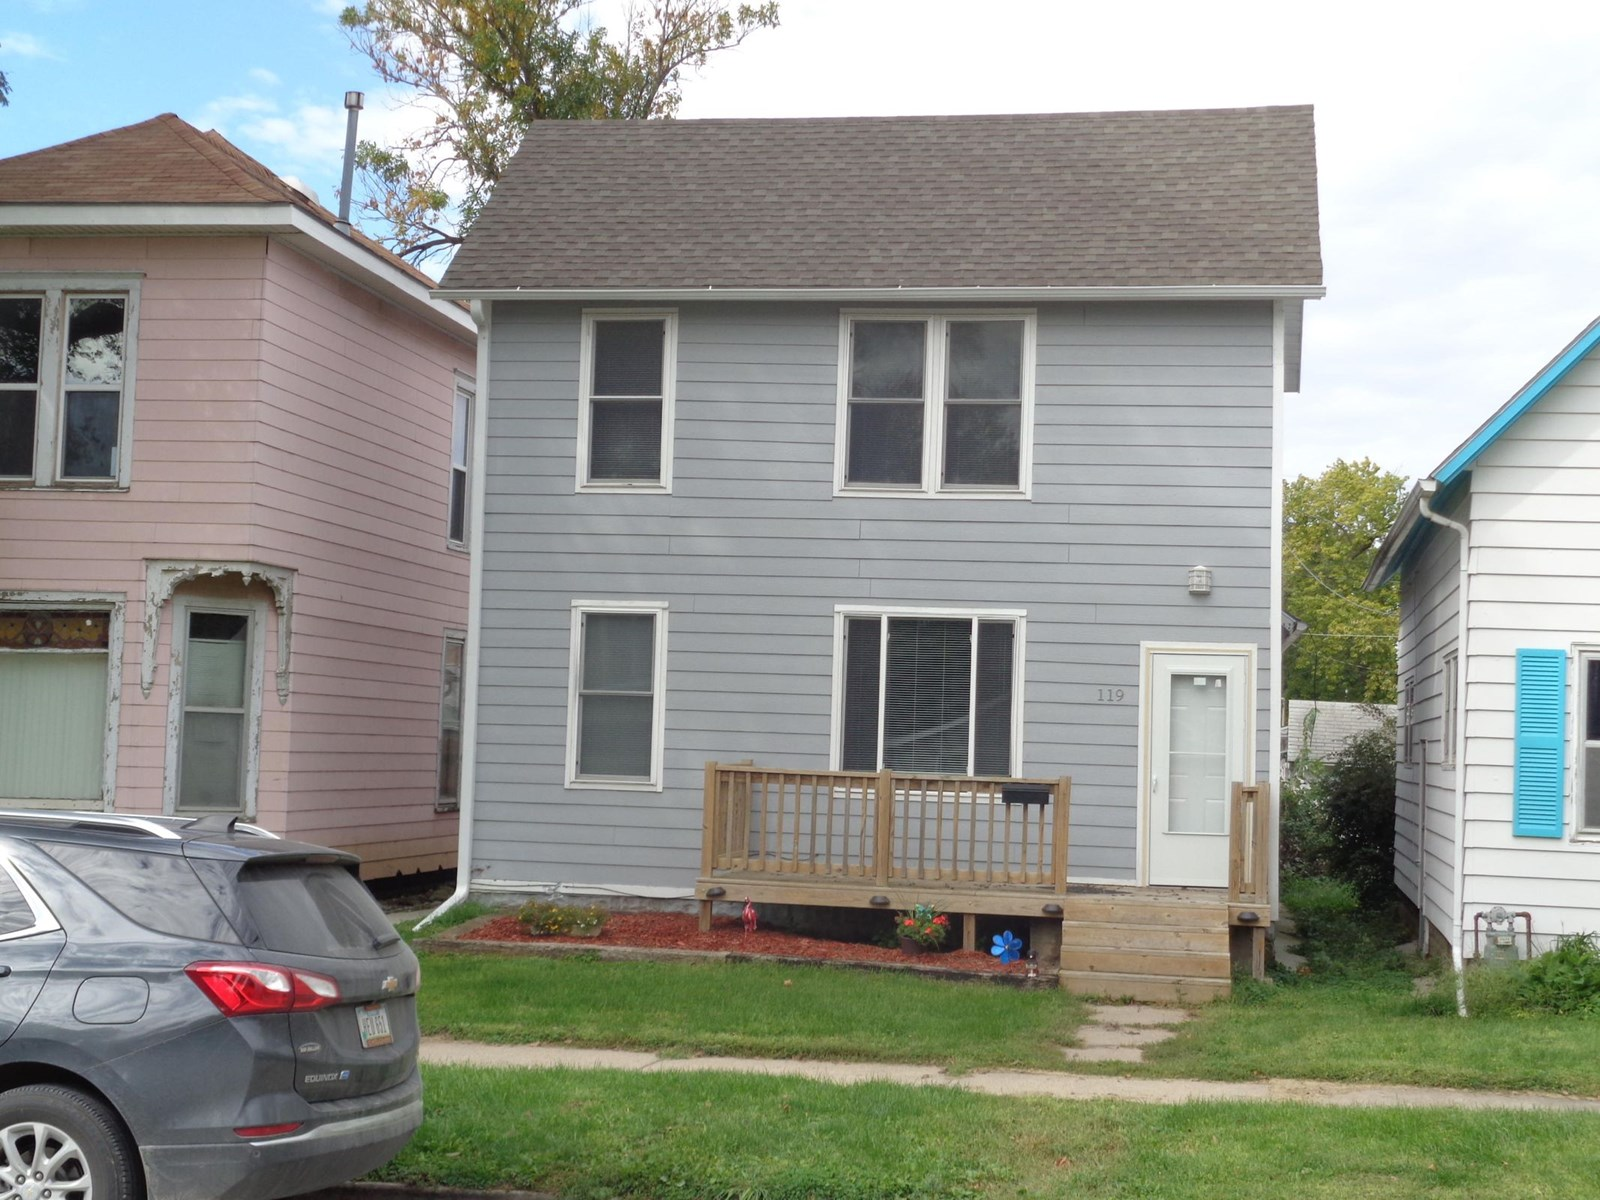 TWO STORY HOME FOR SALE MISSOURI VALLEY HARRISON COUNTY IOWA